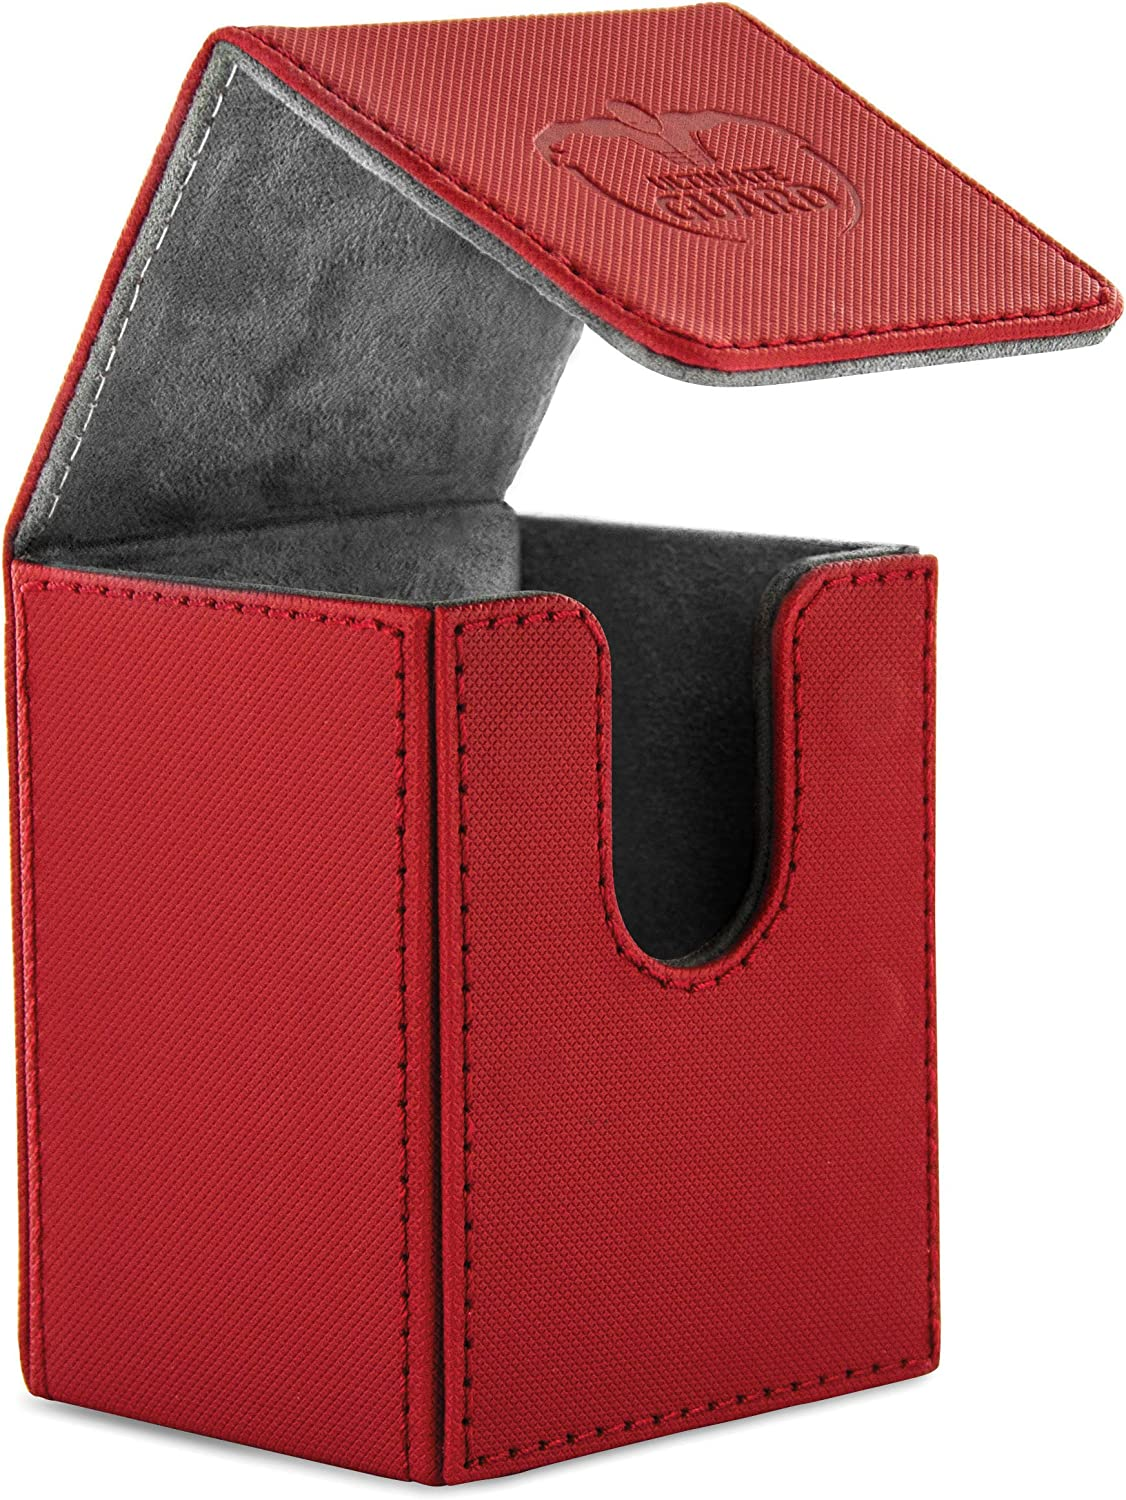 100 Card Flip Xenoskin Deck Case, Red 91kY3rxFt4L